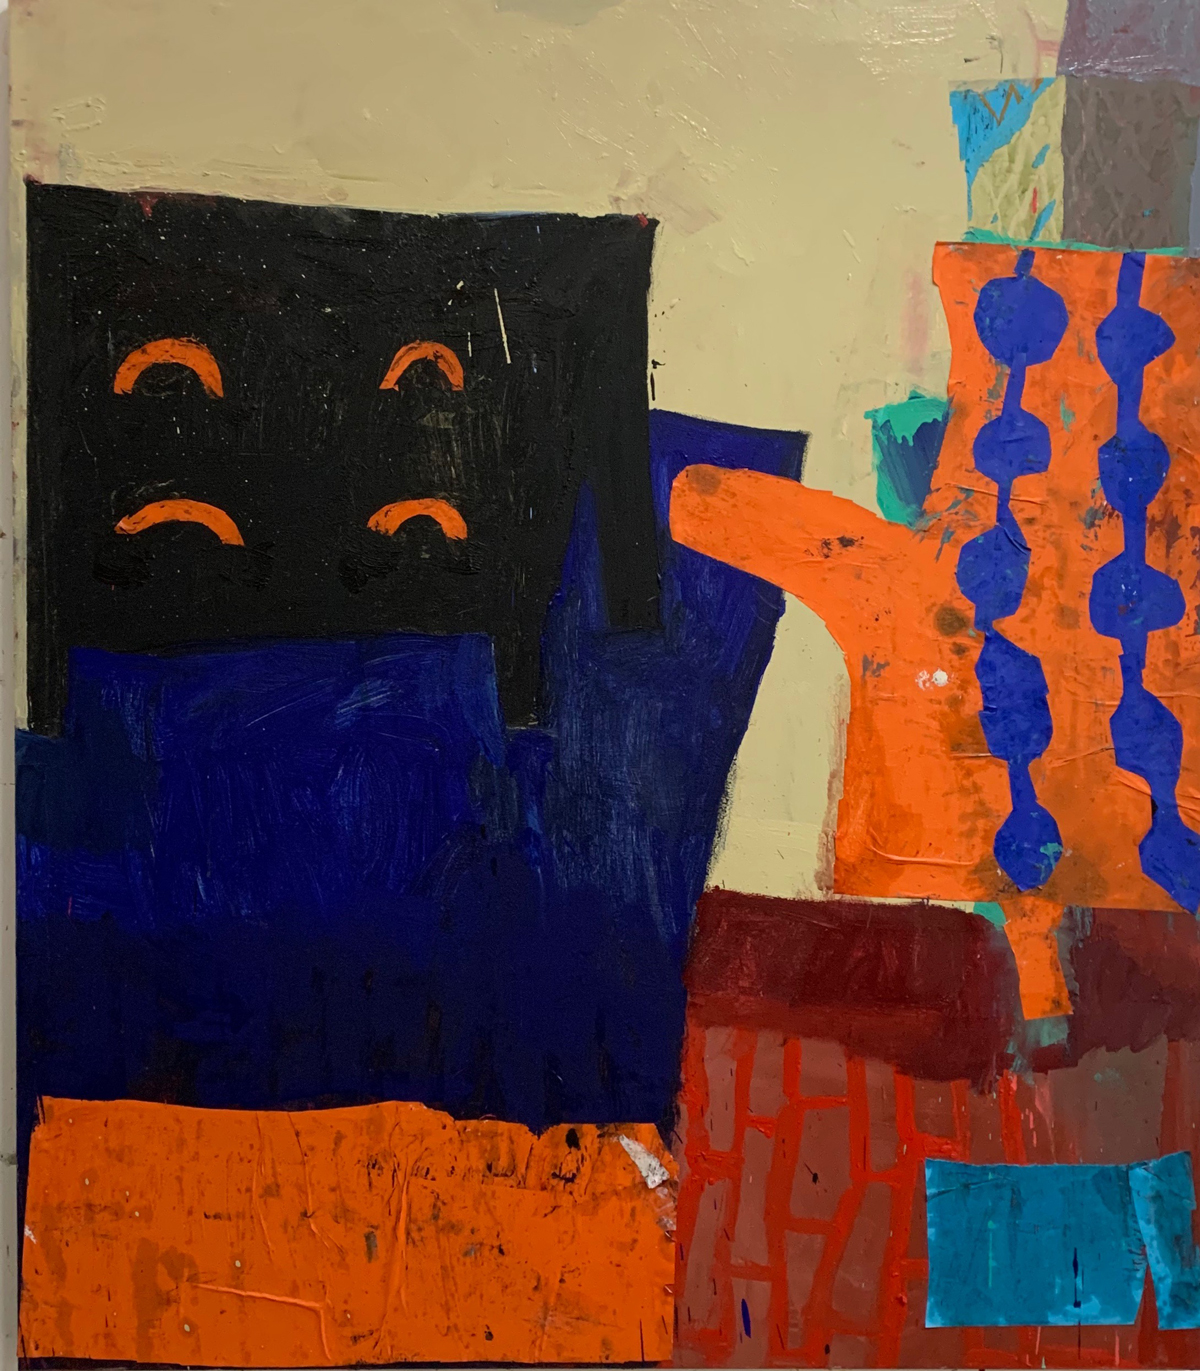 Florence-Hutchings,-The-Orange-Armchair,-2020-Oil-paint-and-collage-on-canvas-150x130cm